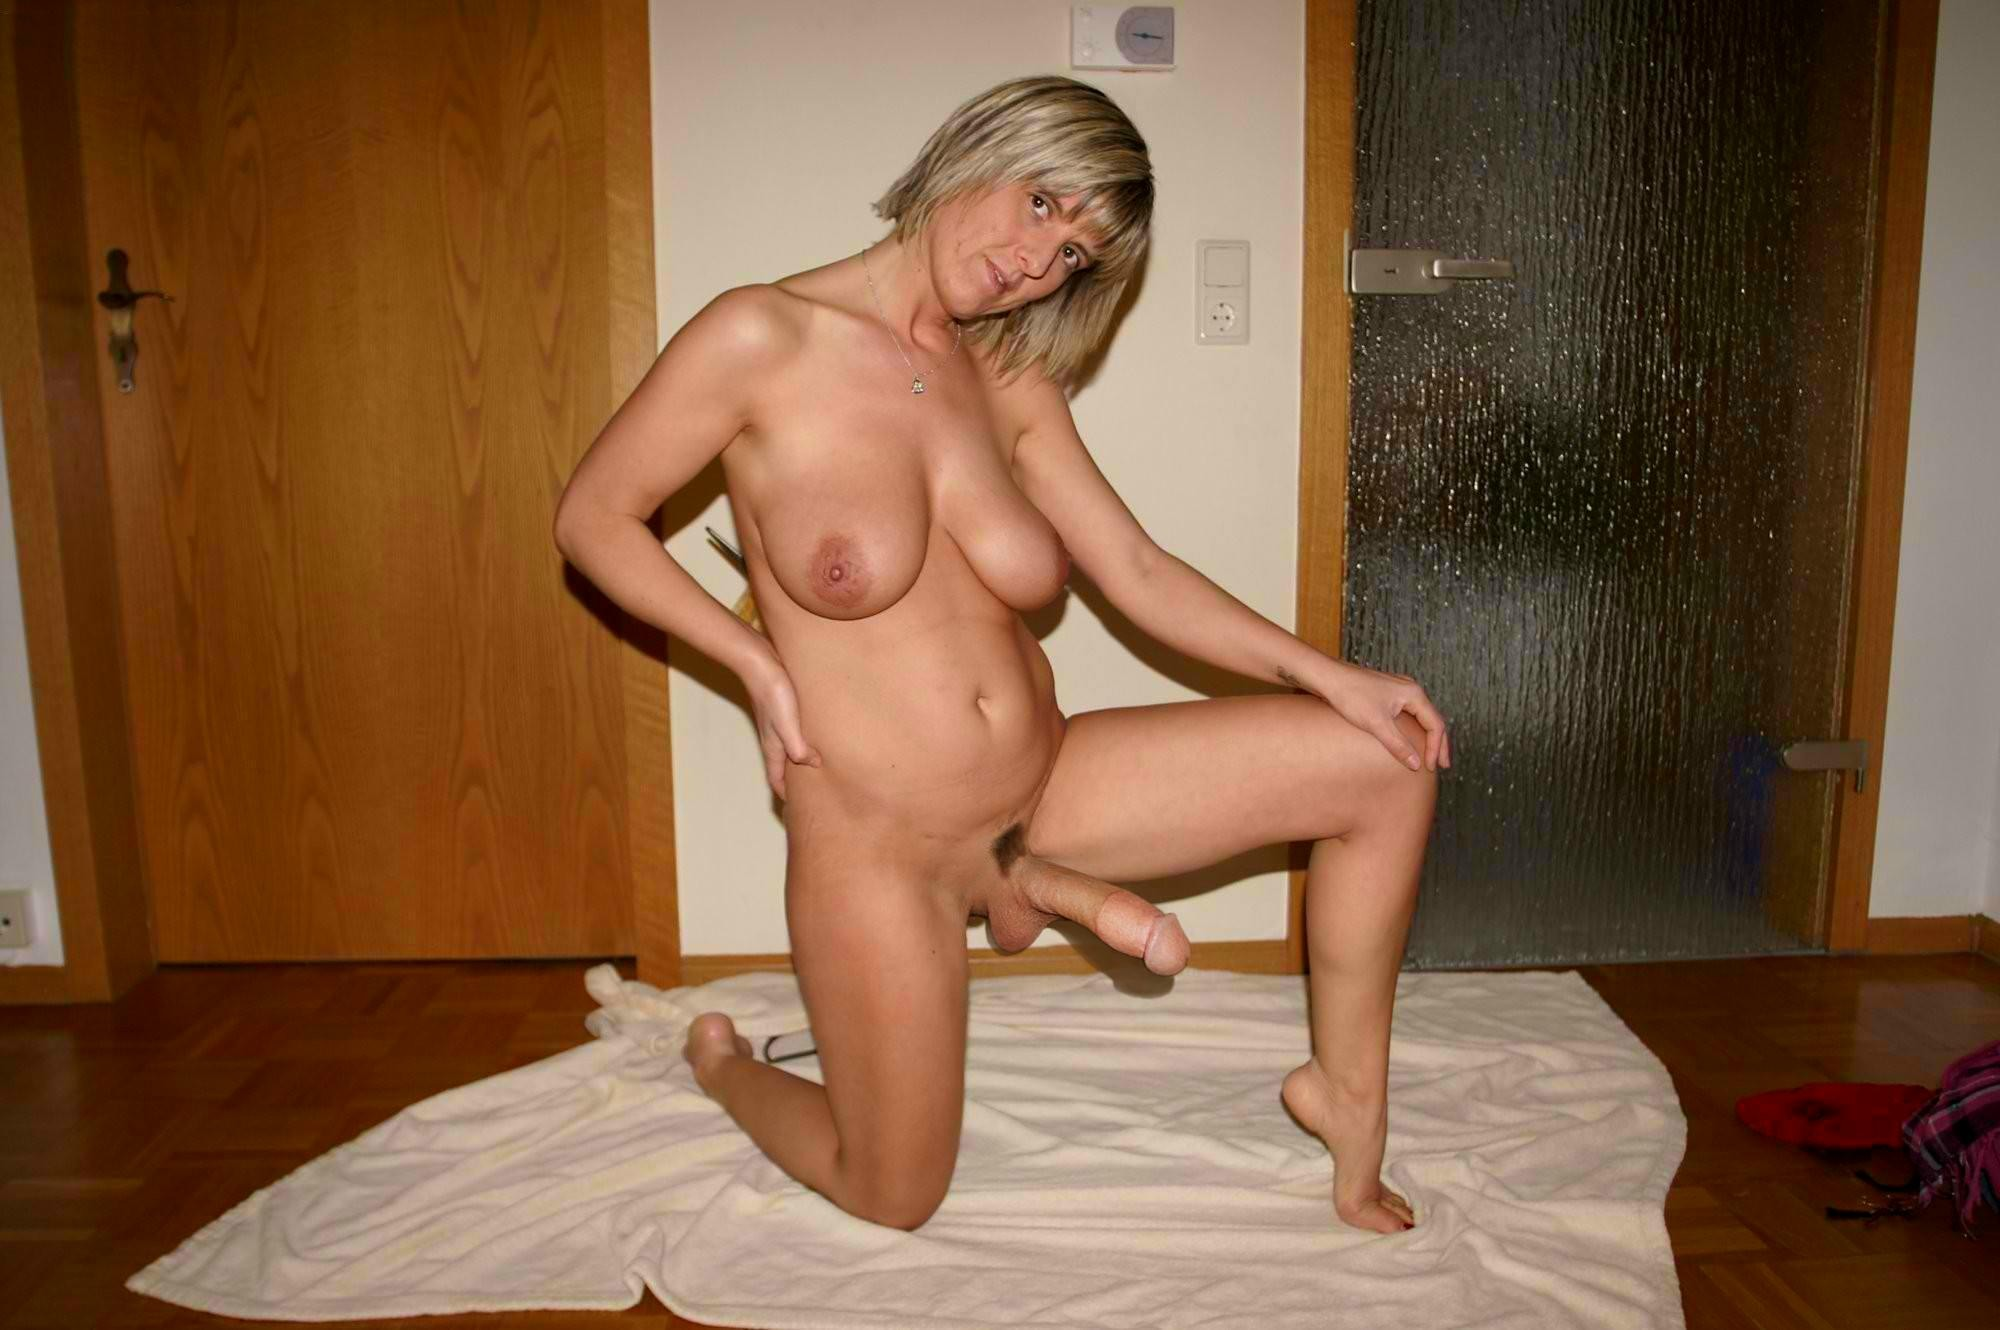 Miley cyrus naked drawing